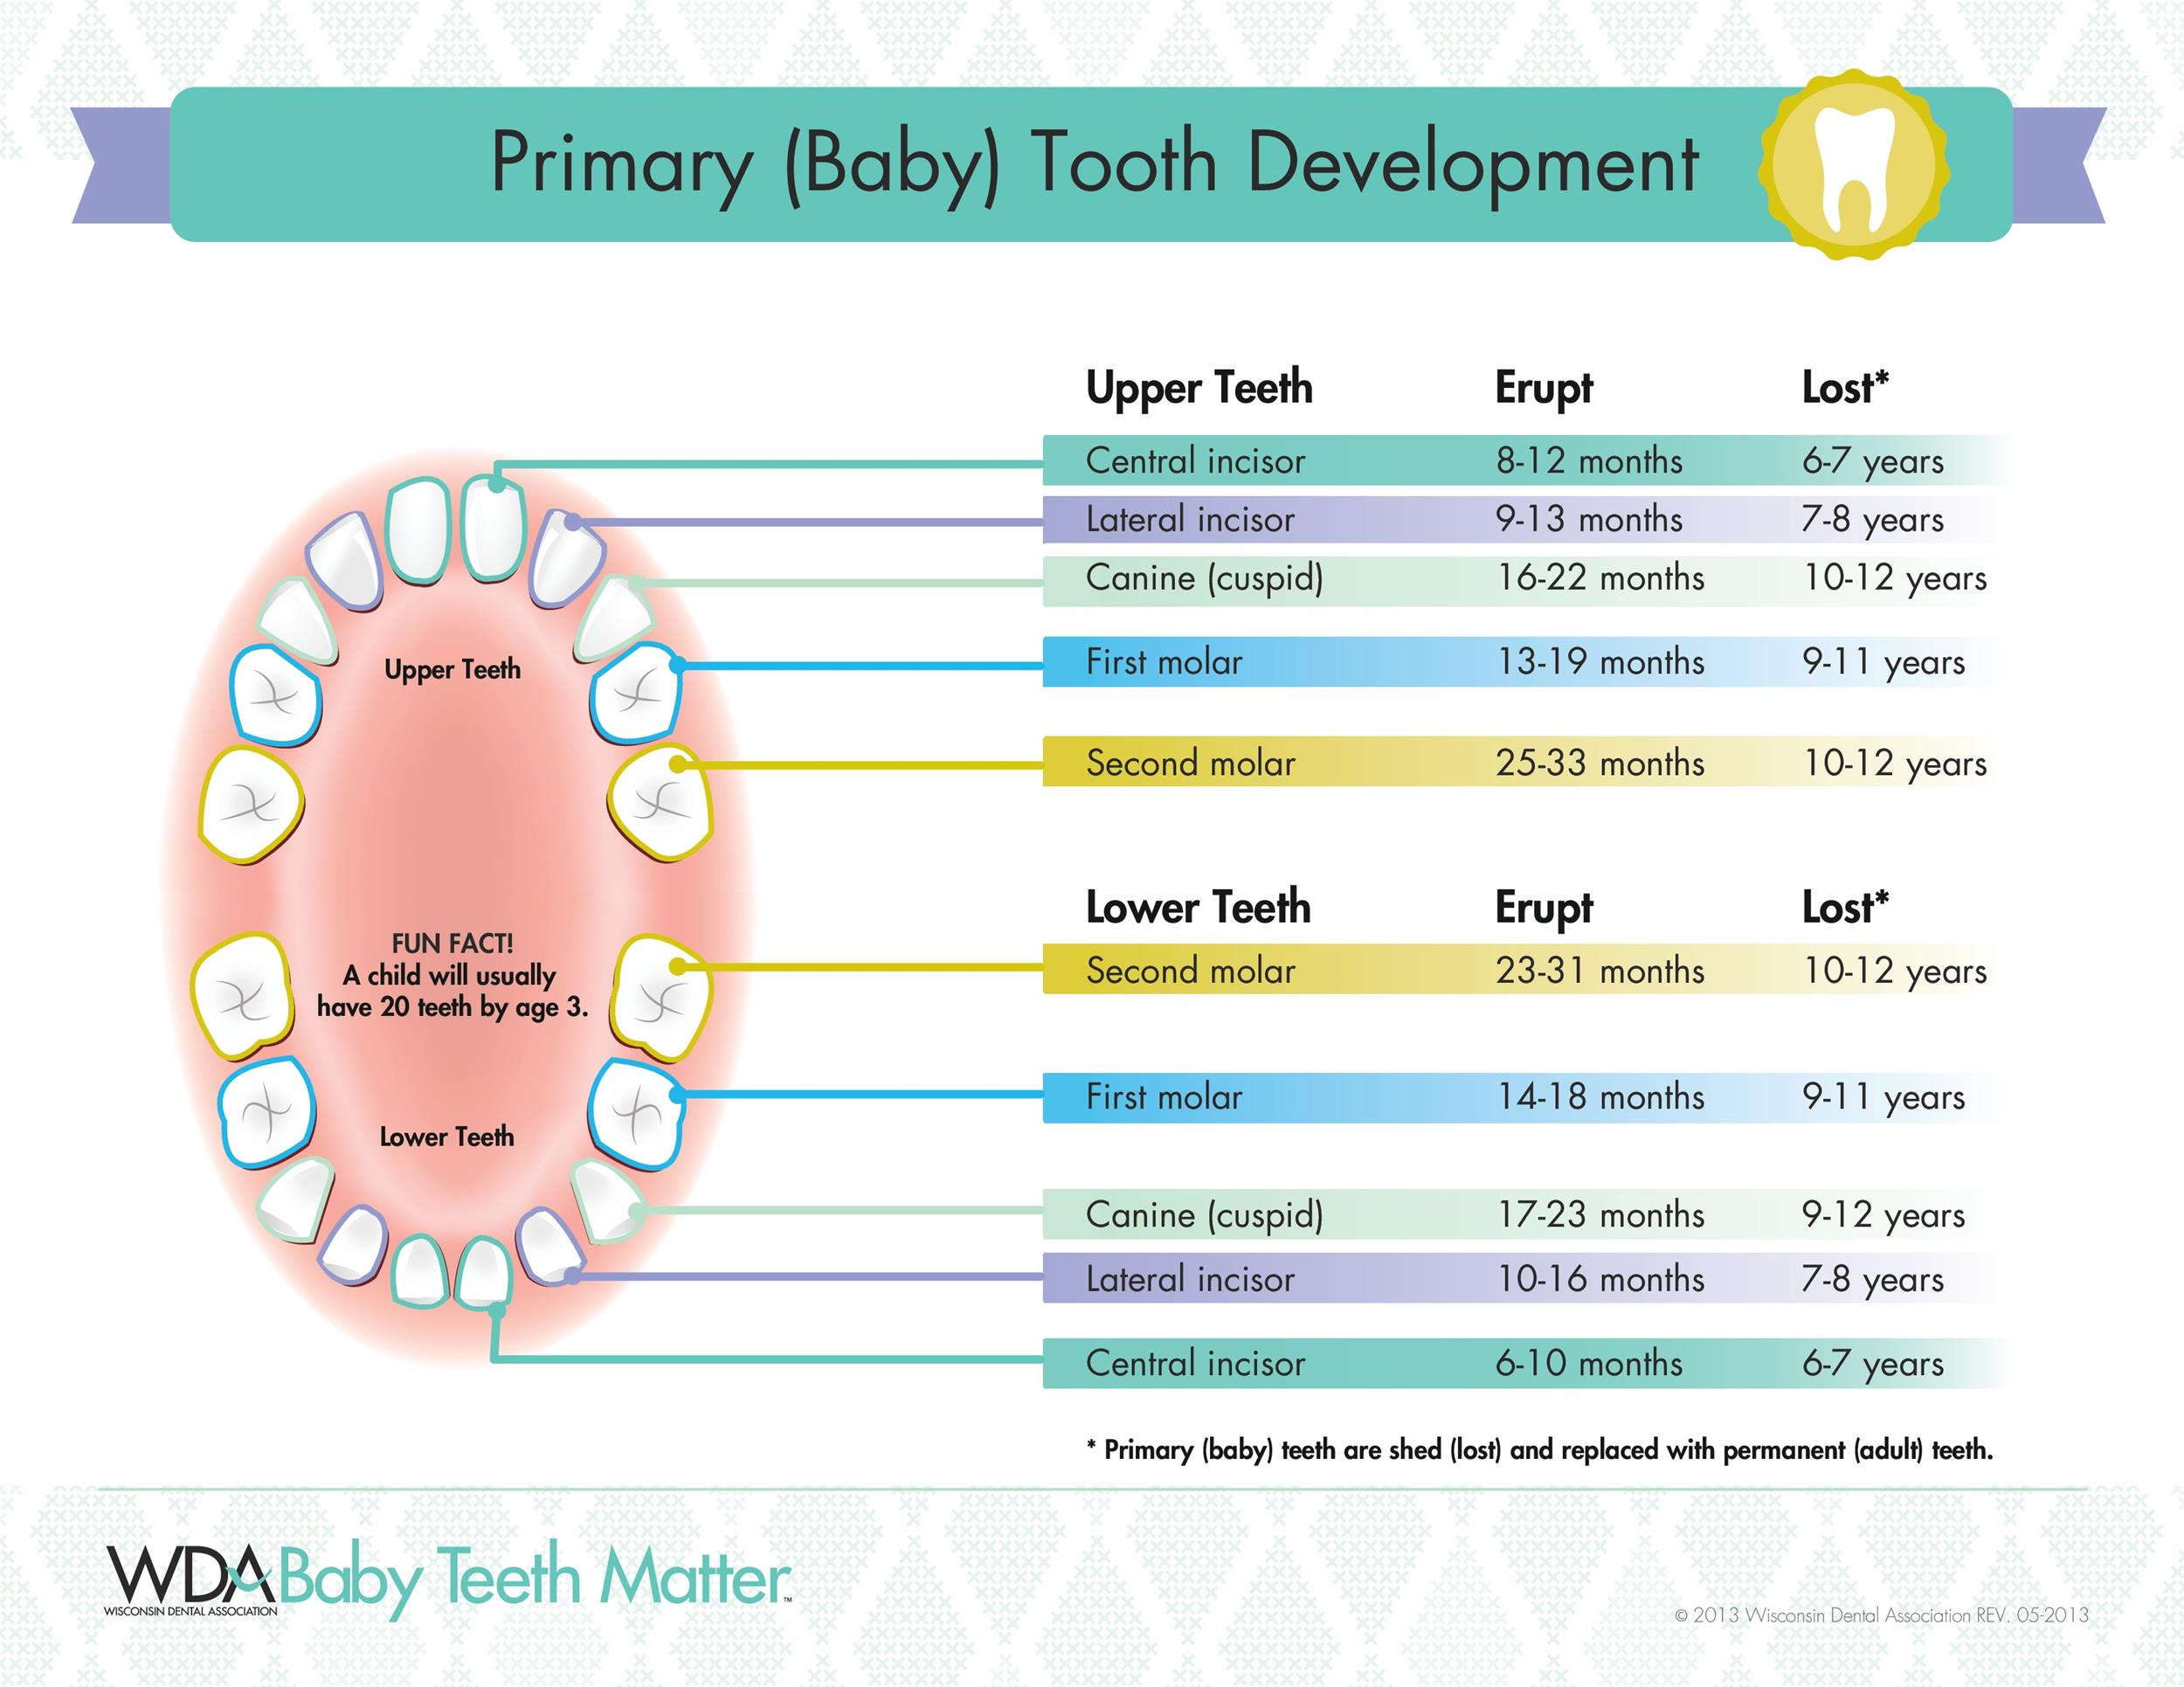 photo regarding Baby Tooth Chart Printable titled 38 Printable Little one Enamel Charts Timelines ᐅ Template Lab